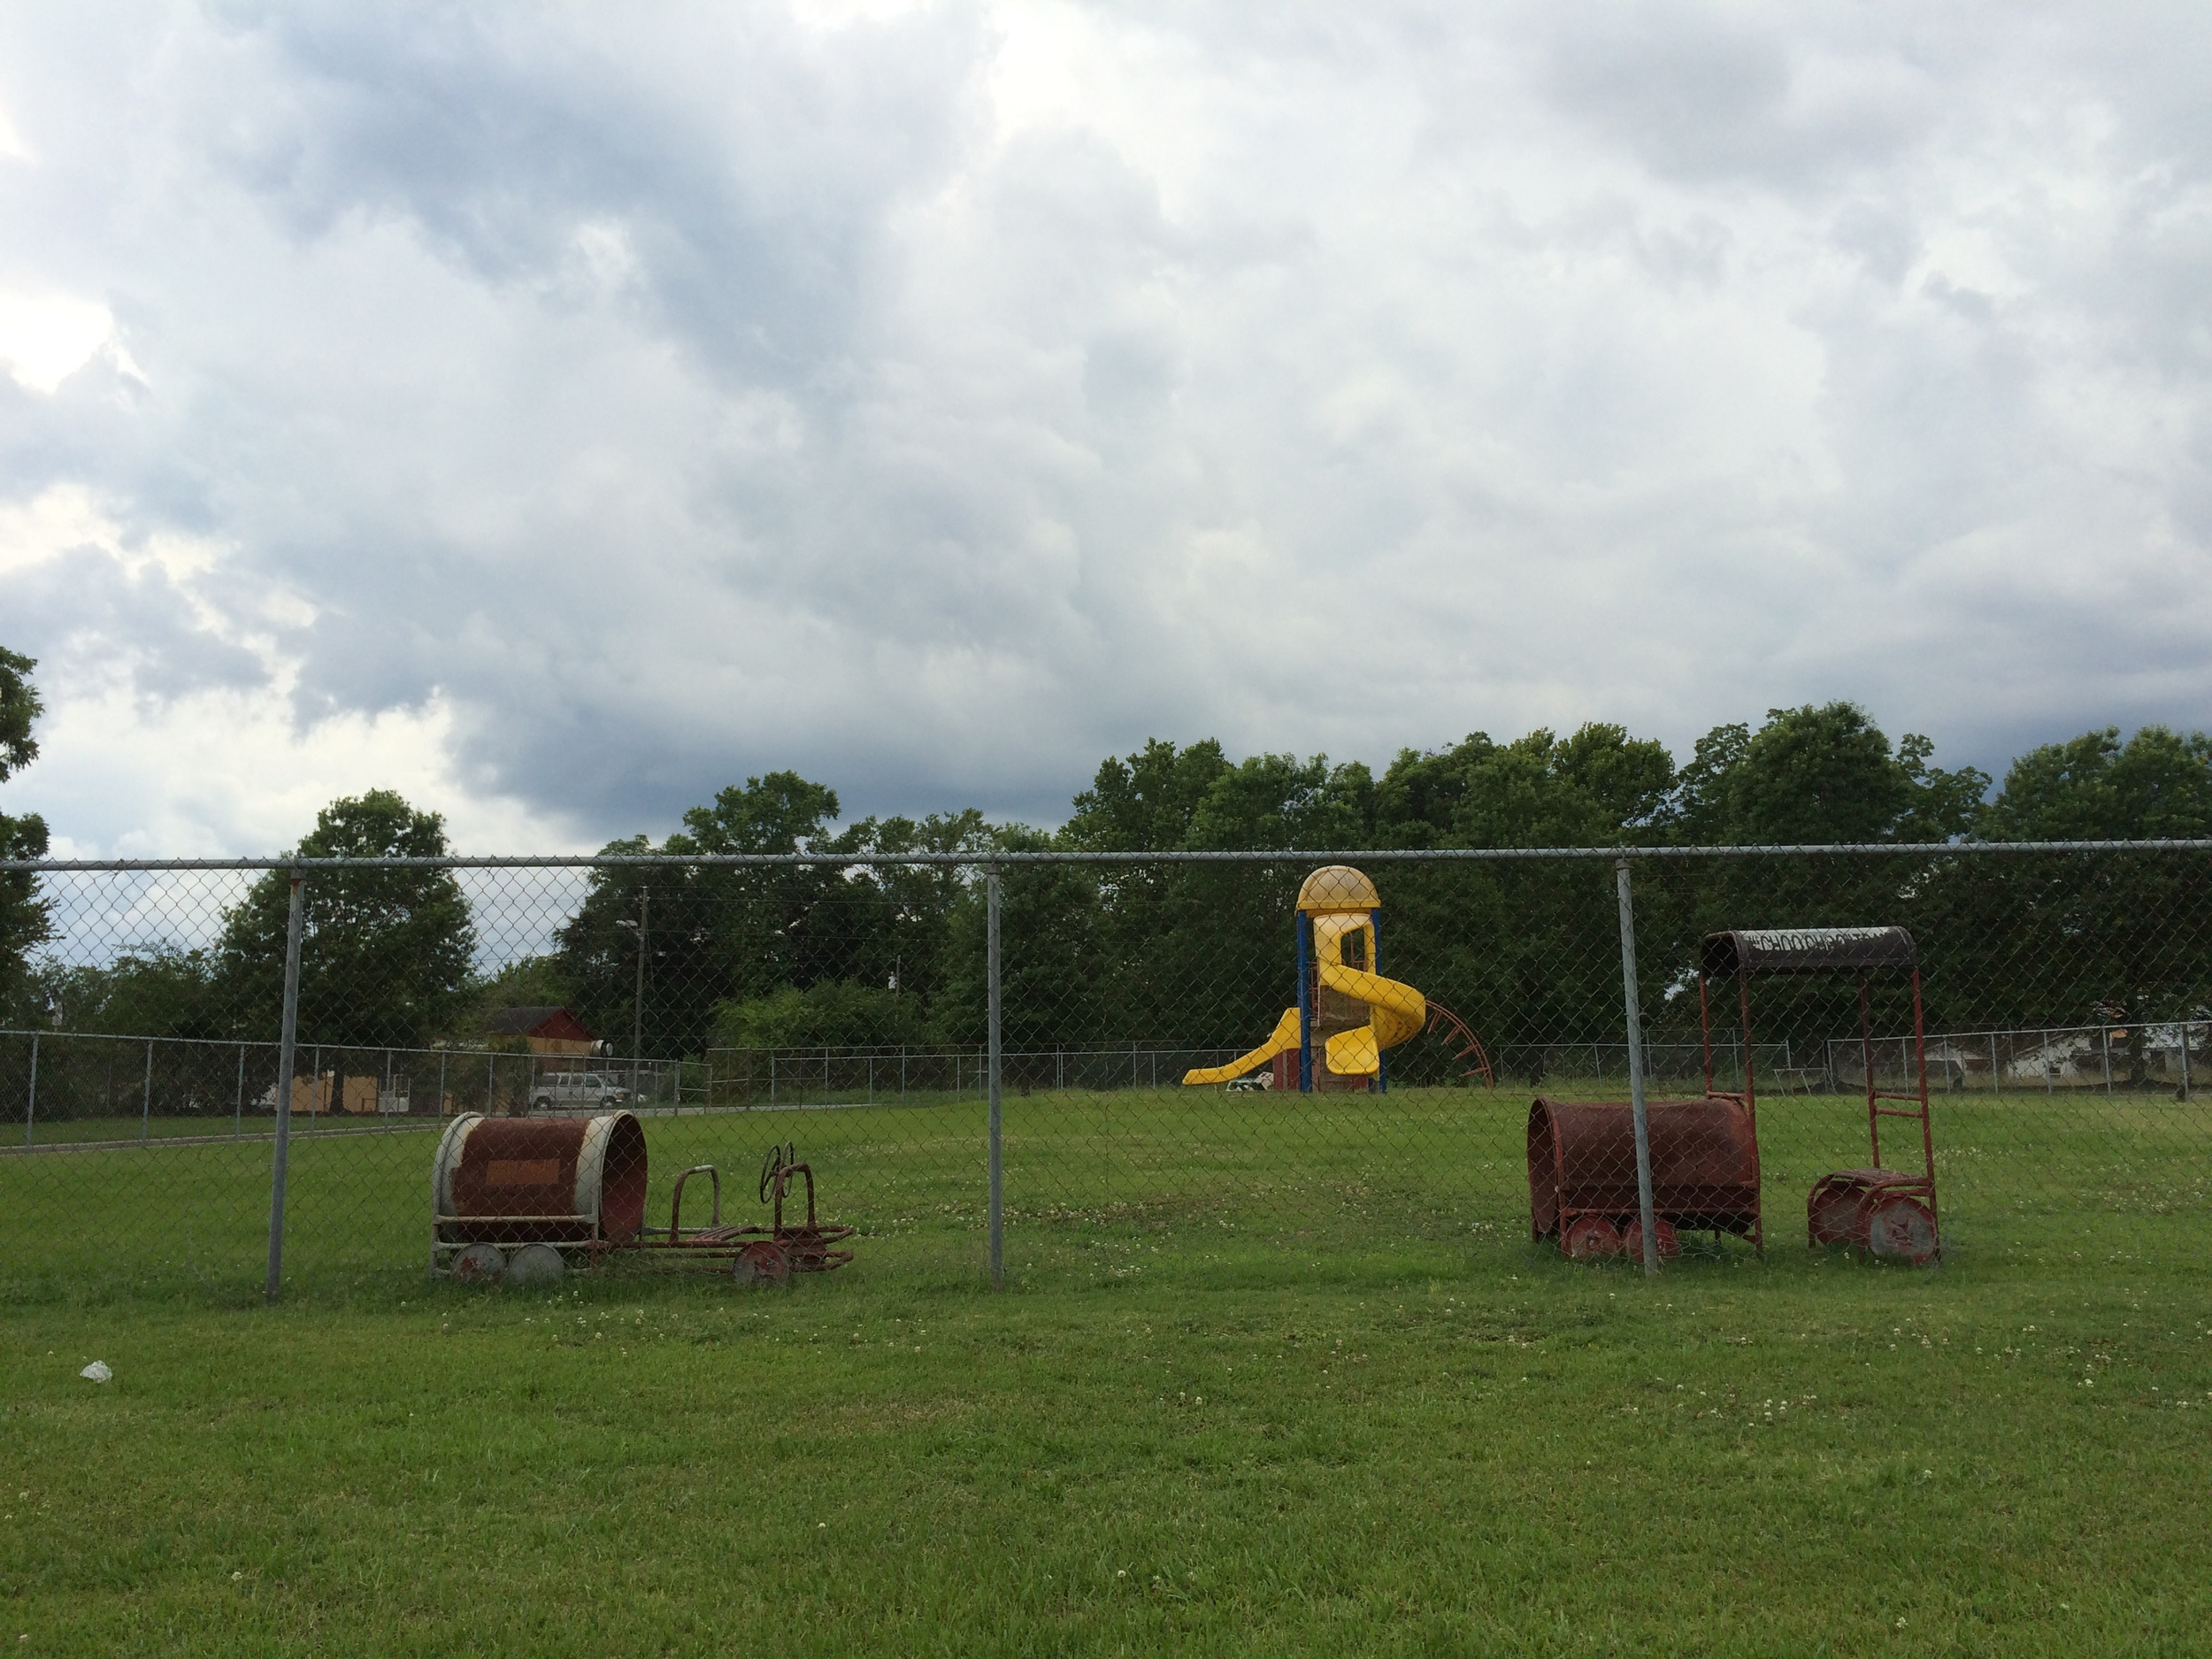 This is the playground of an elementary school on the east side of Savannah. It's only features are two rusted train cabooses and a large plastic slide.